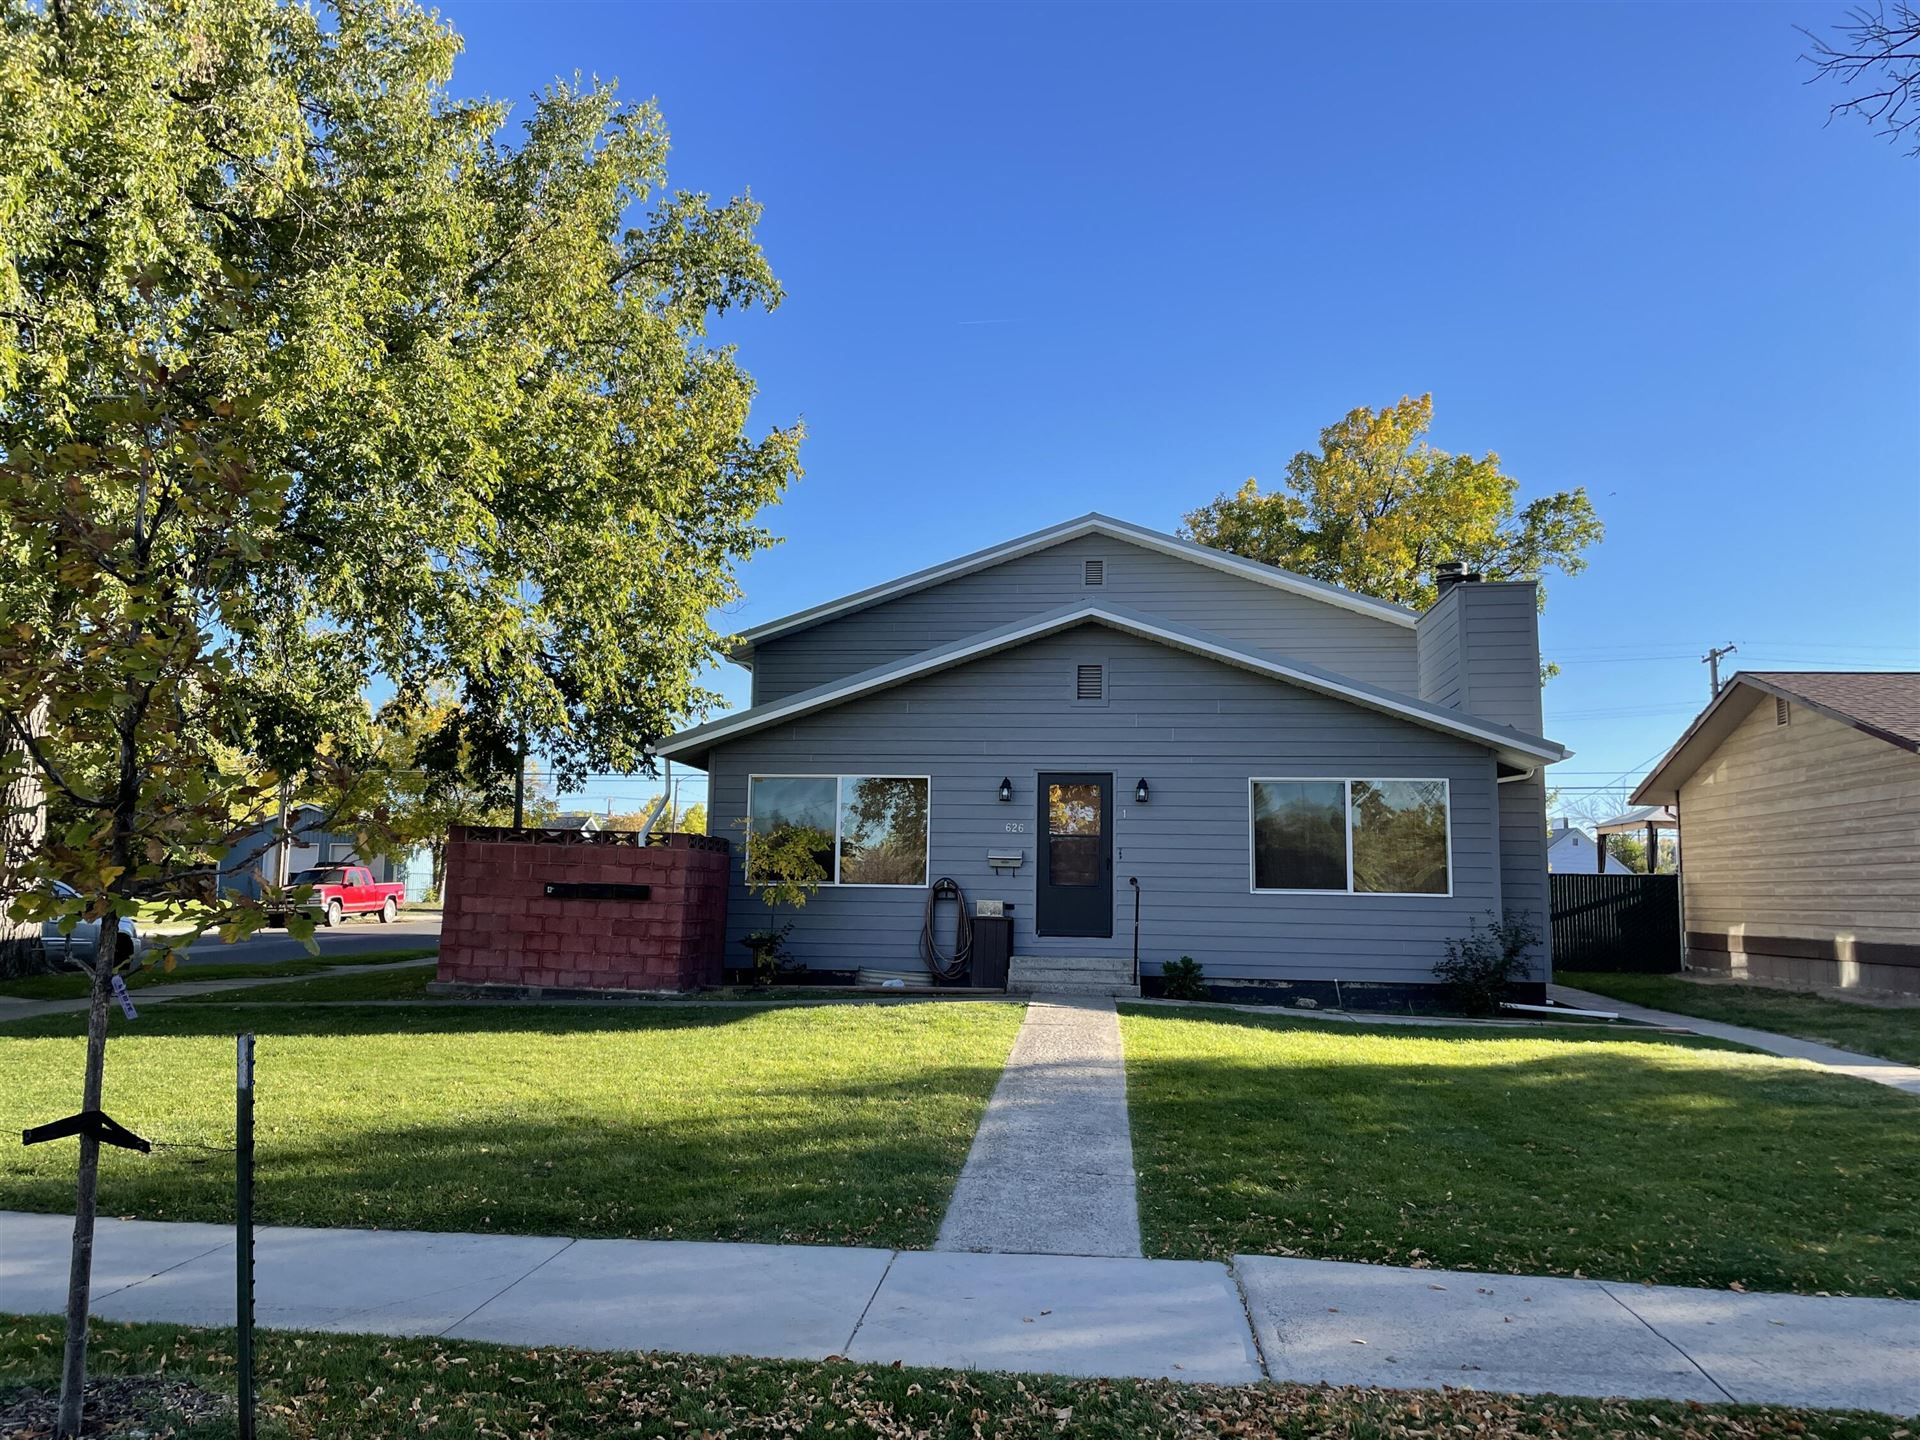 Photo of 626 8th Avenue South, Great Falls, MT 59405 (MLS # 22115618)